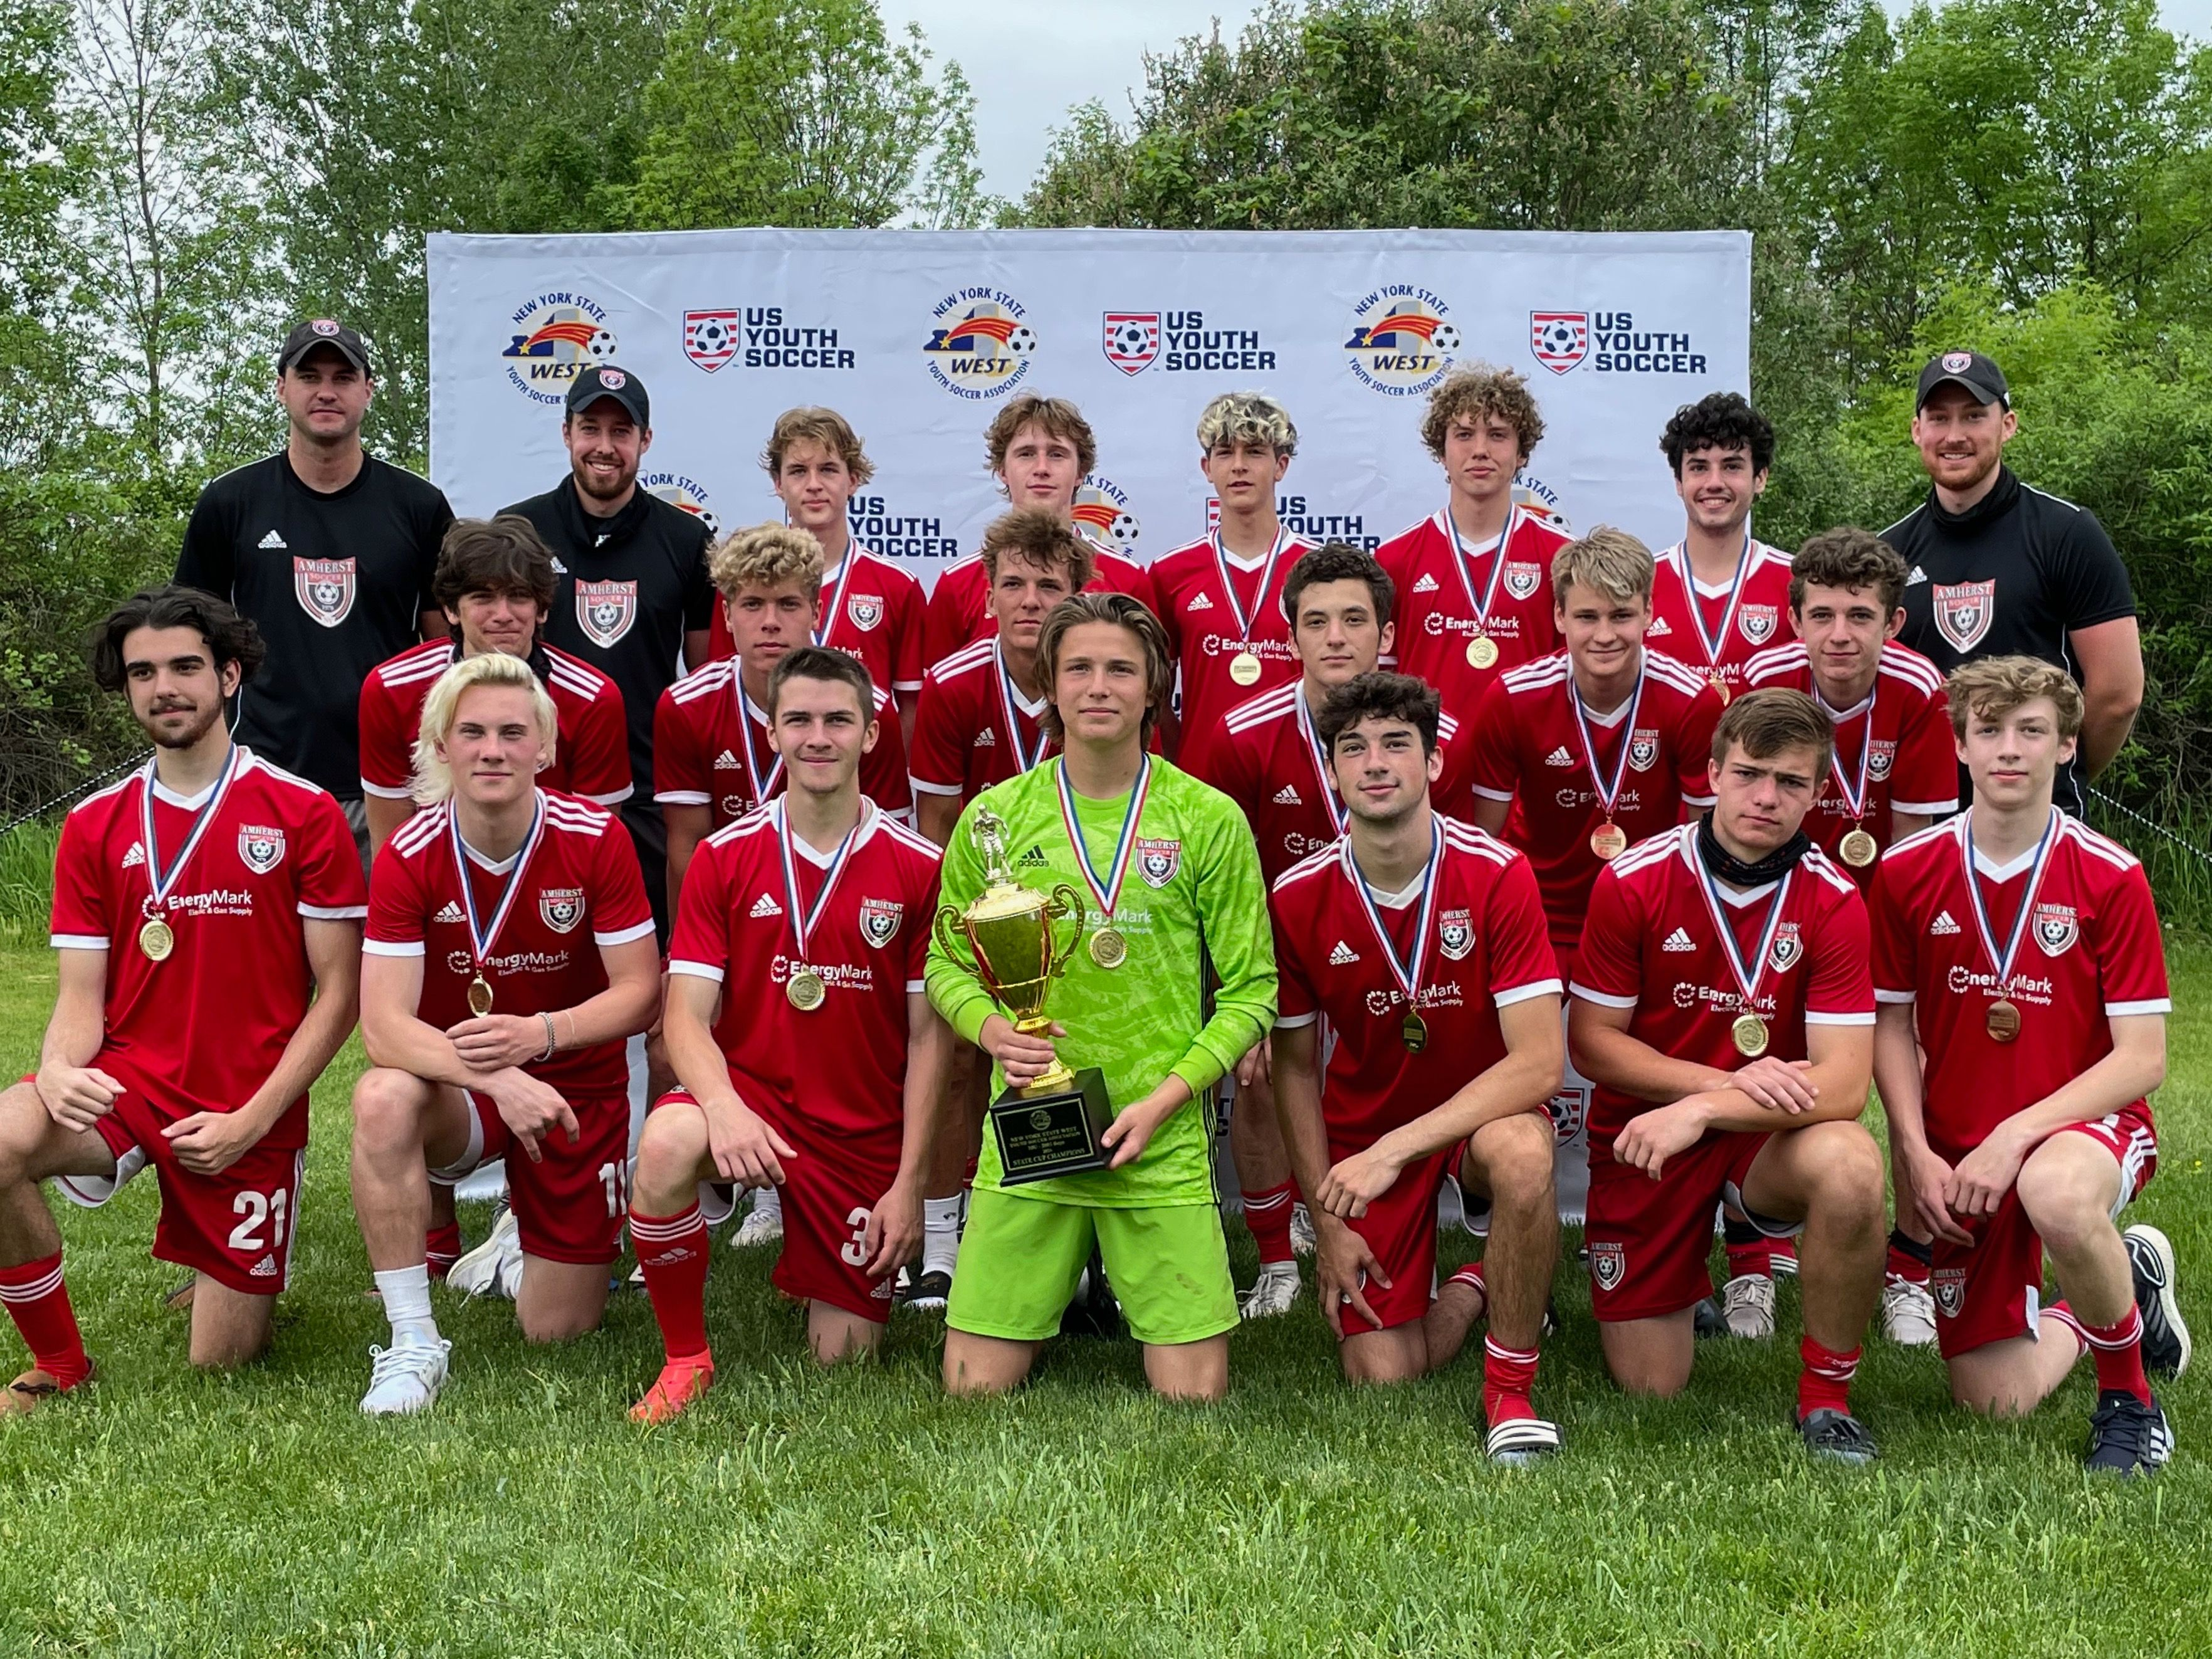 FIRST AMHERST TEAM TO WIN STATE CUP IN 25 YEARS!